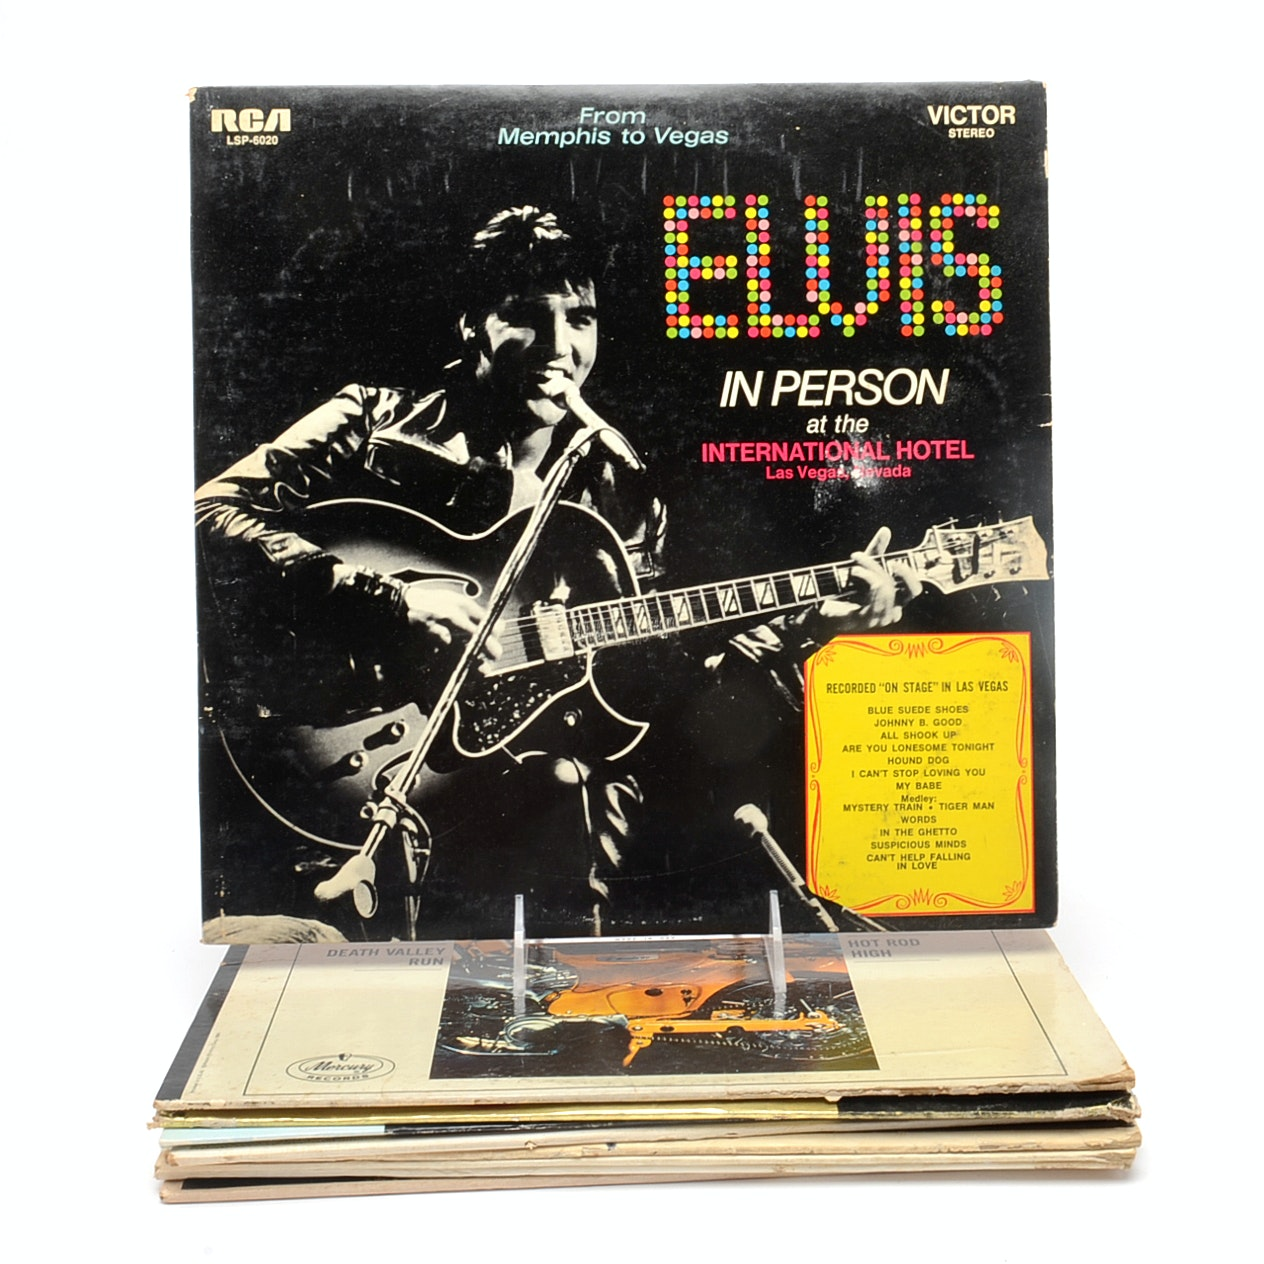 Everly Brothers, Elvis and Other Vintage Rock/Pop LPs